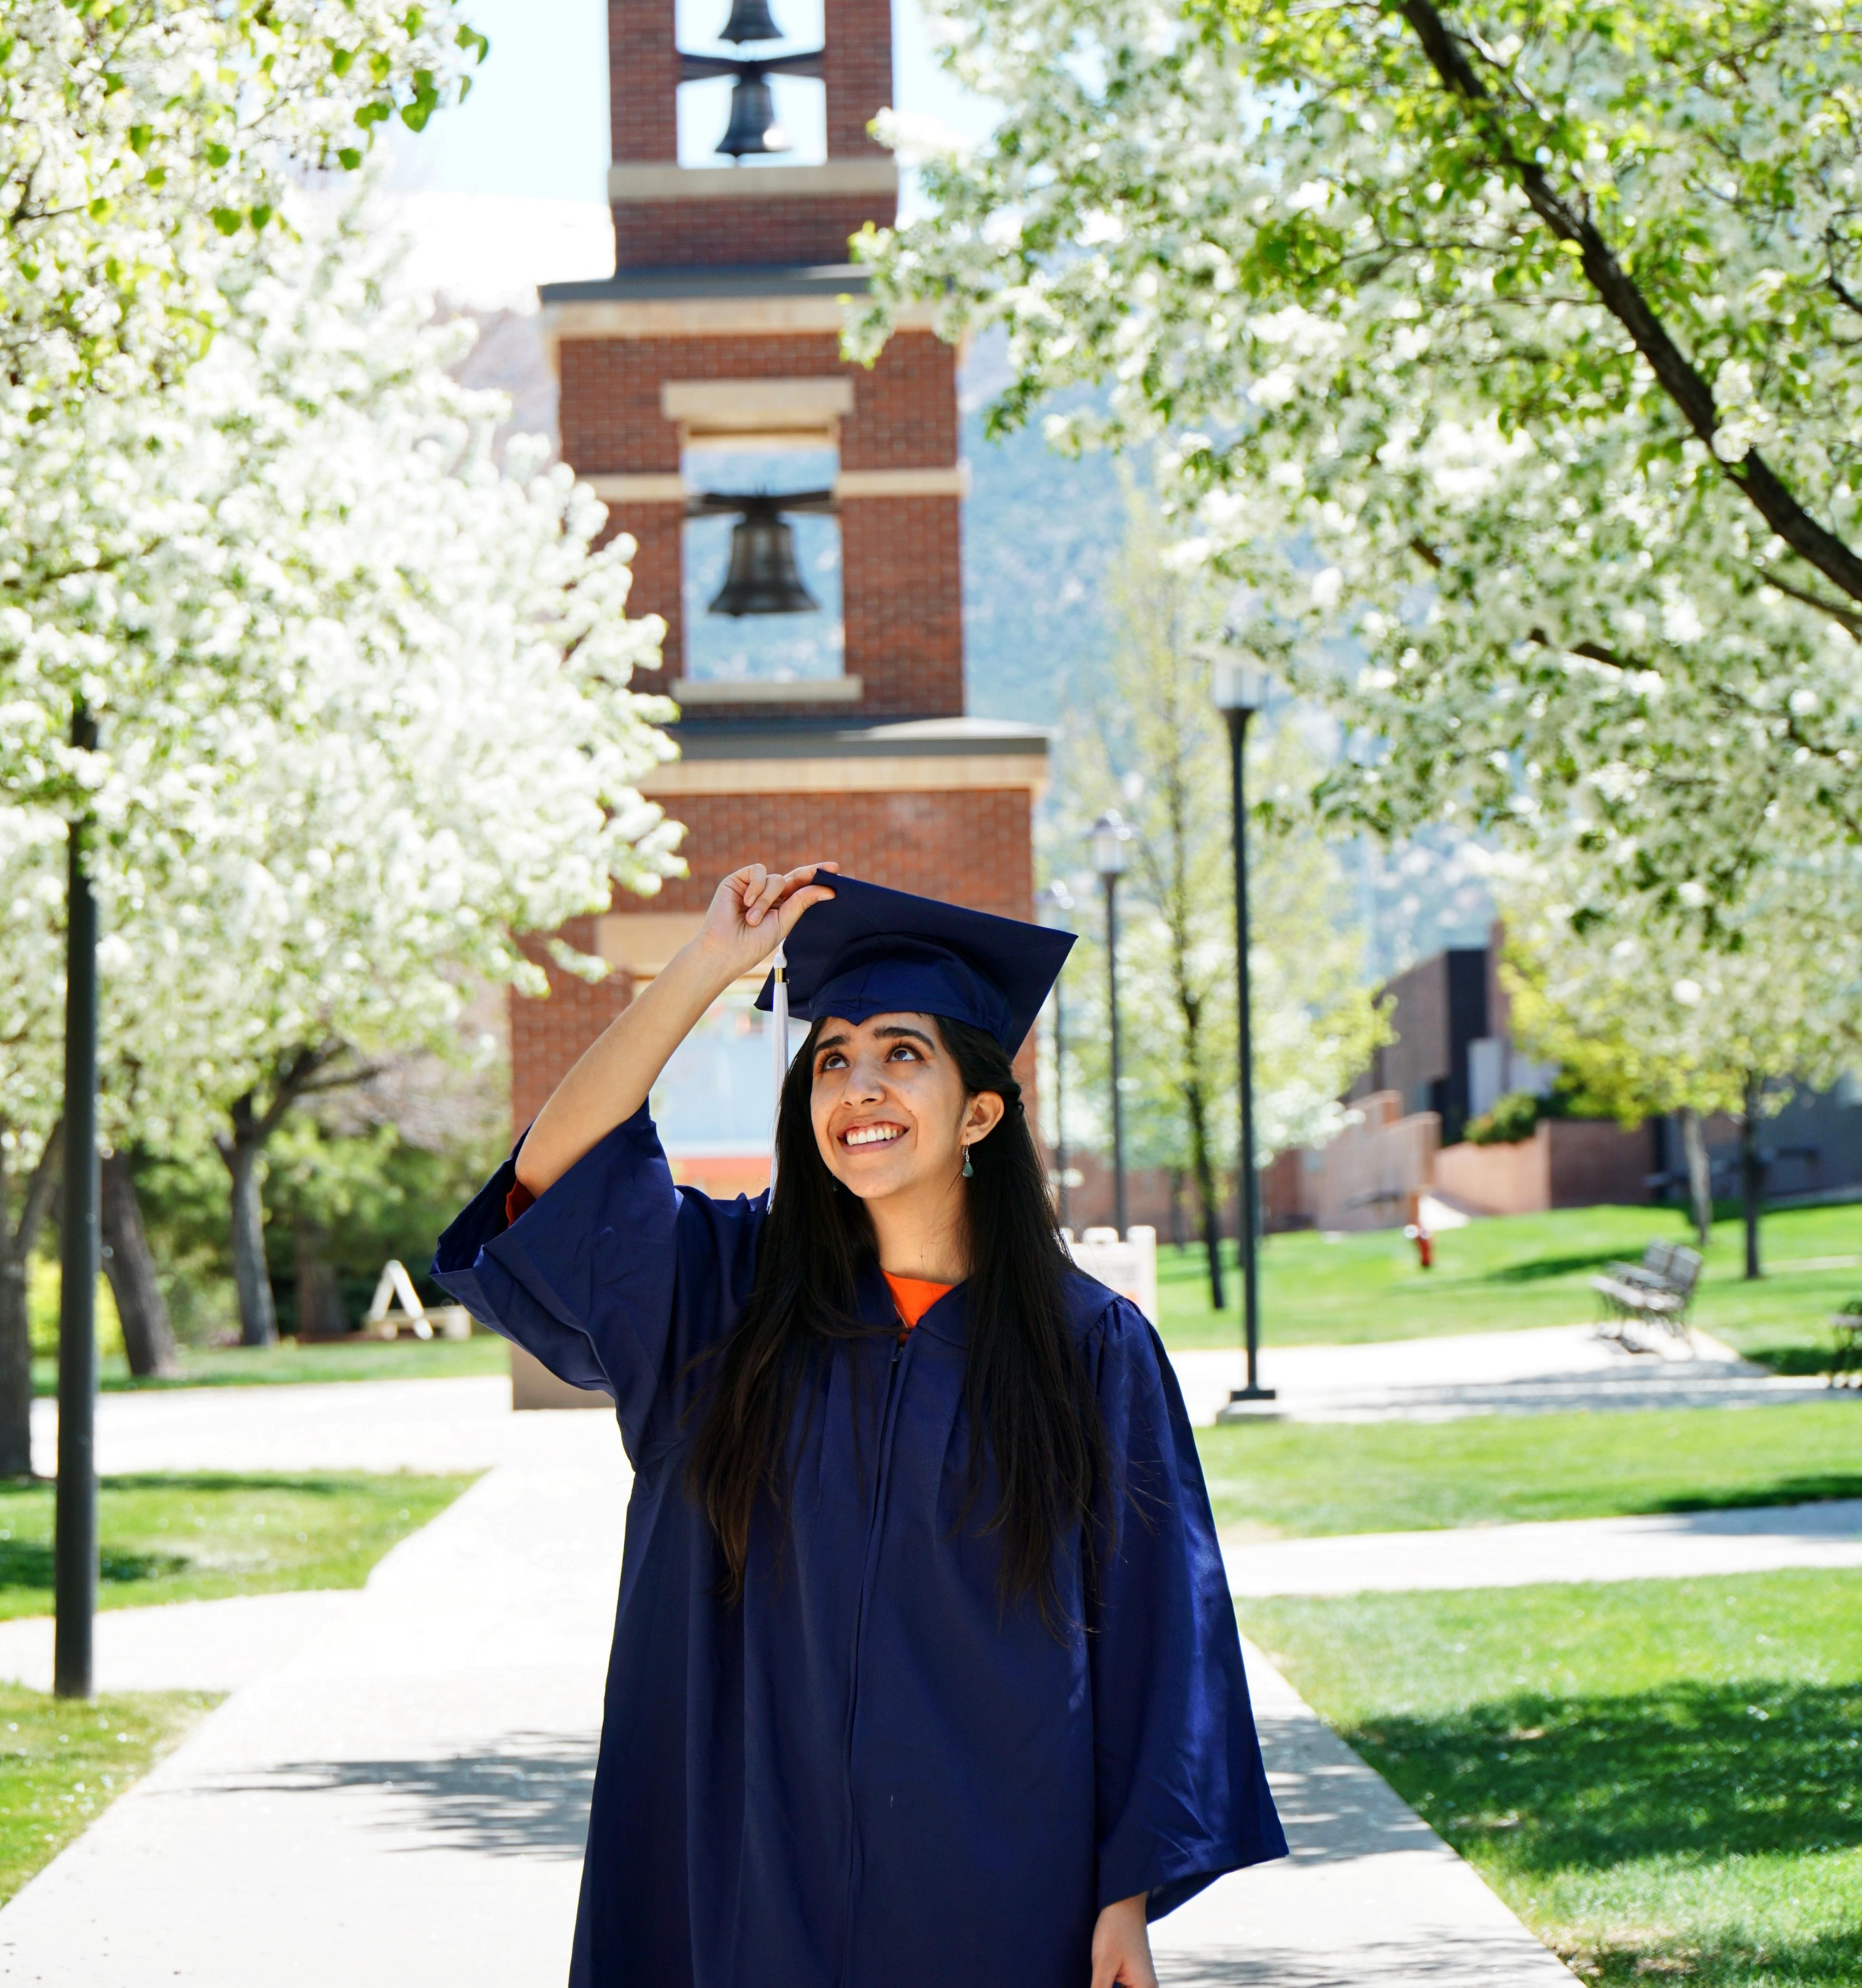 Salazar, a Snow College leader, got her start with the Career Center